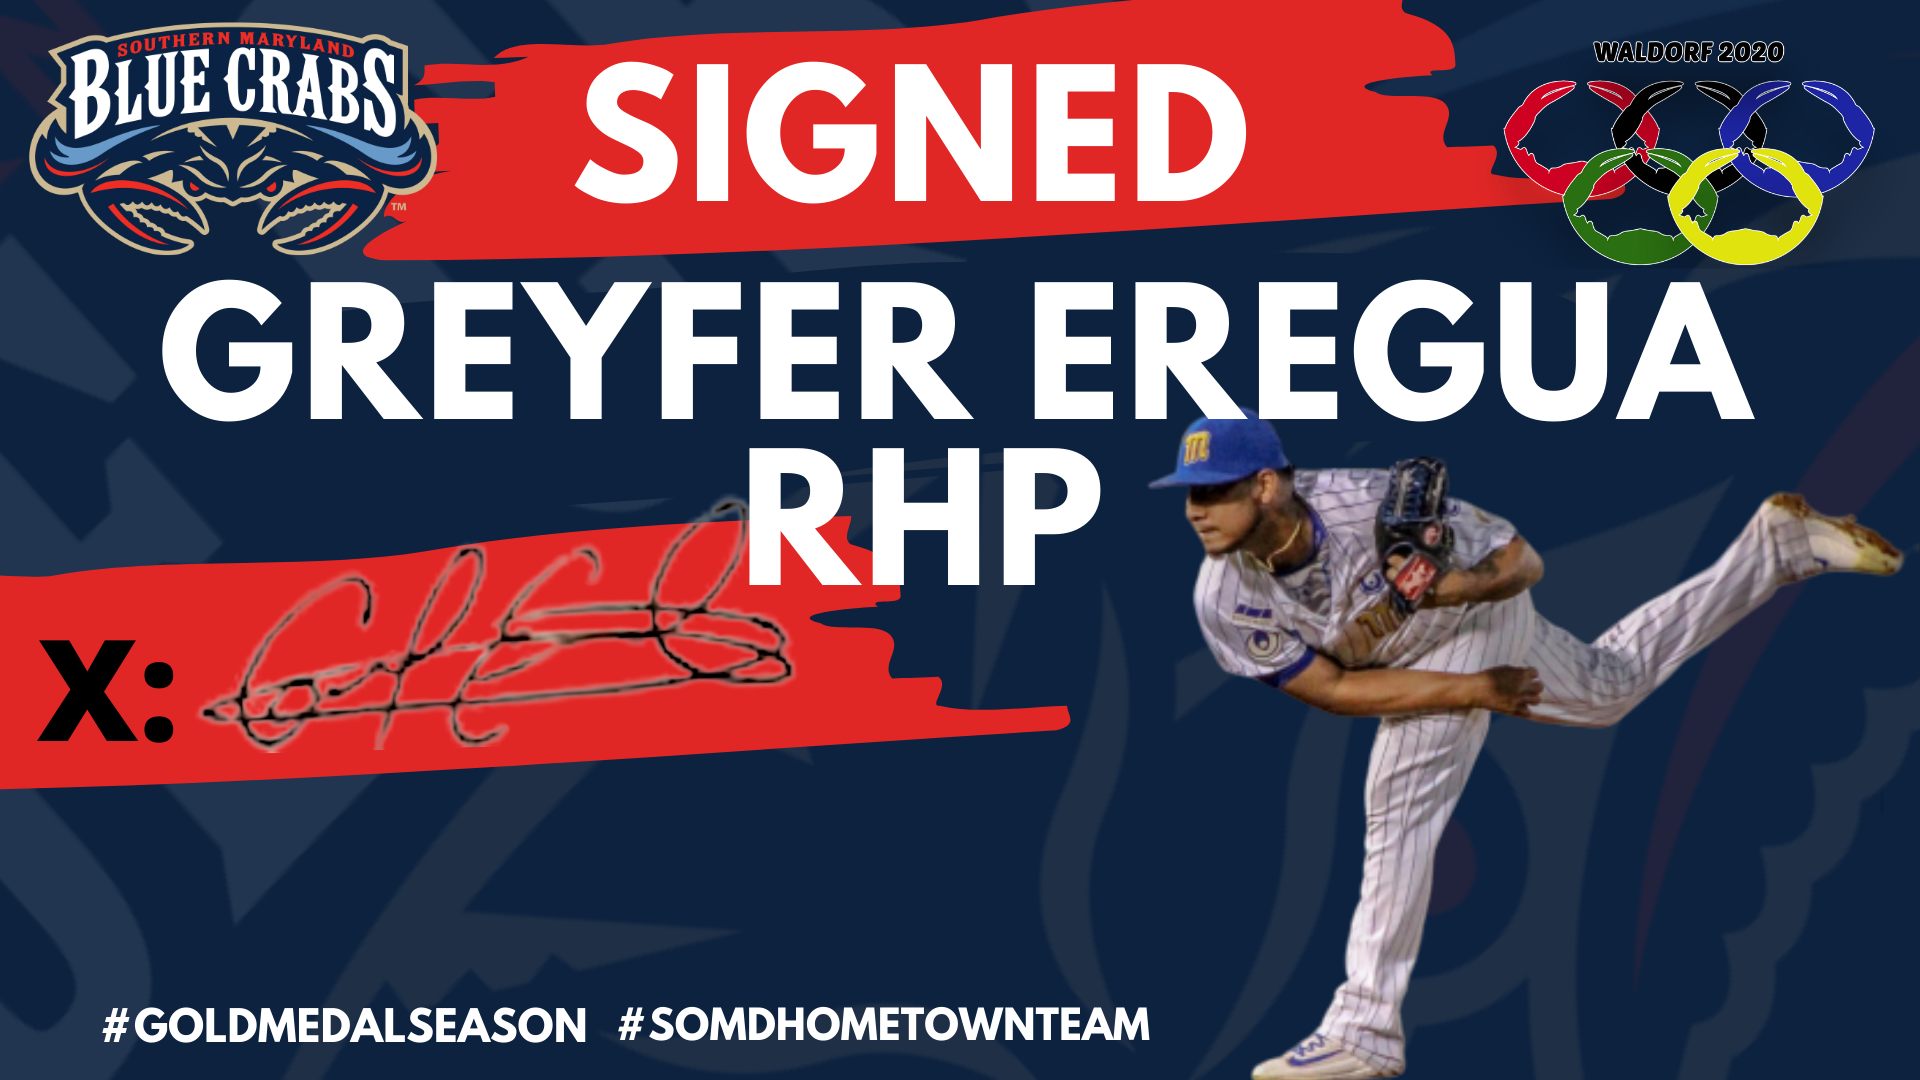 Blue Crabs Sign Greyfer Eregua